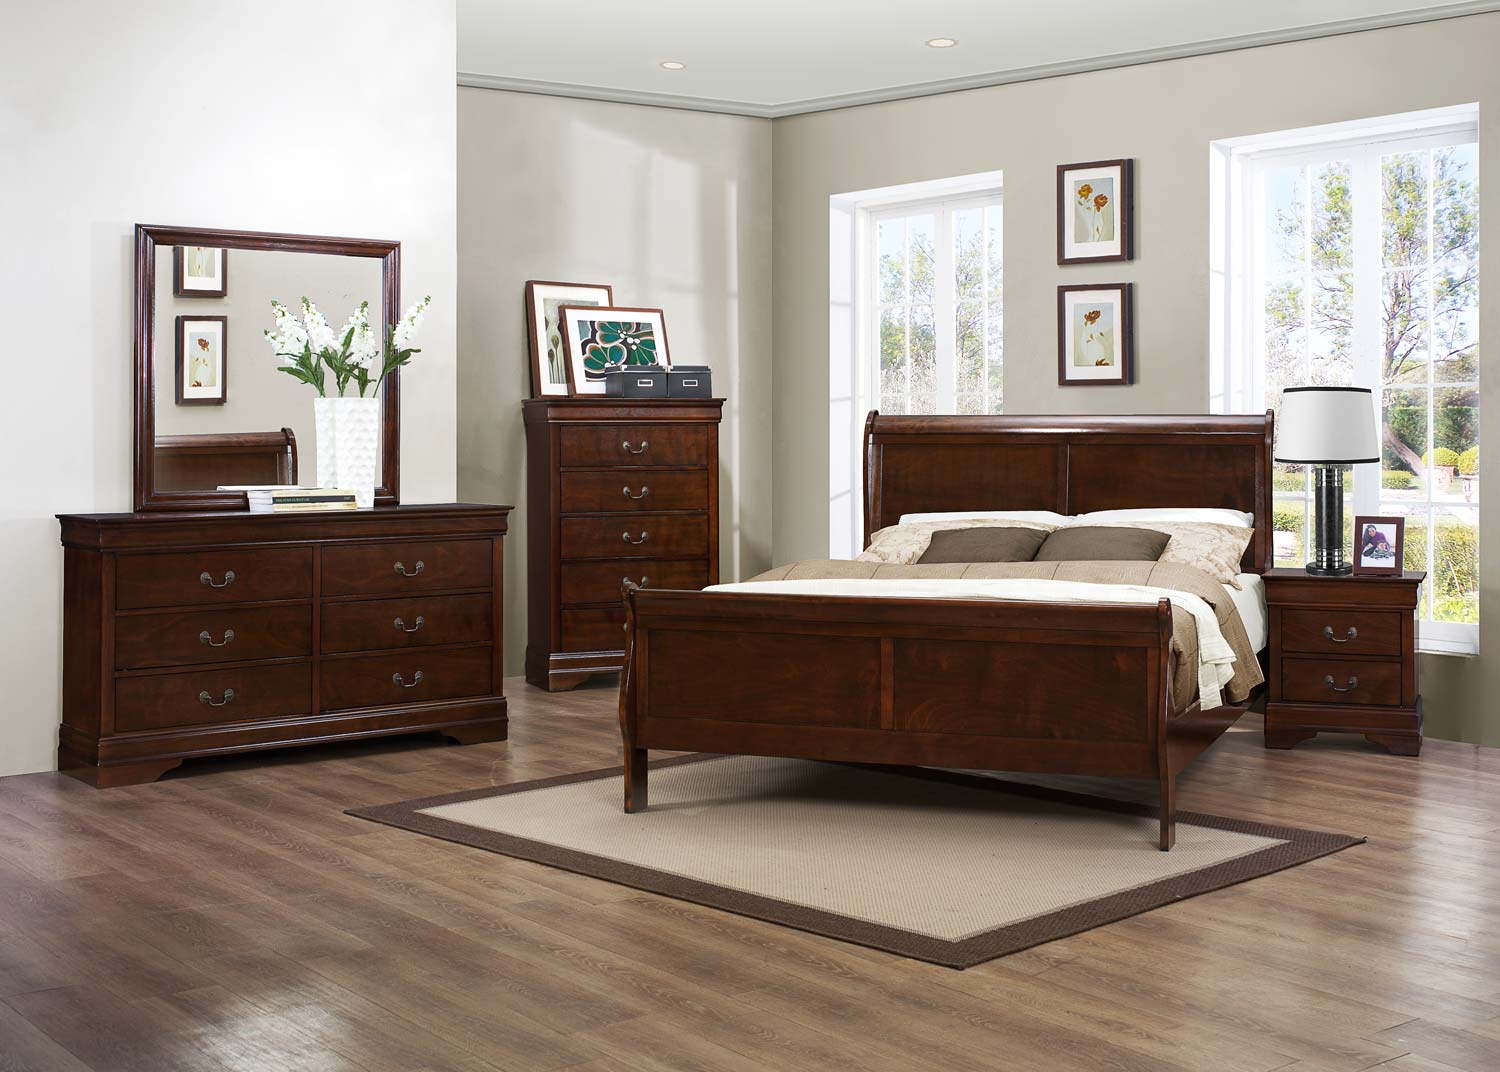 Homelegance Mayville Bedroom Set - Burnished Brown Cherry